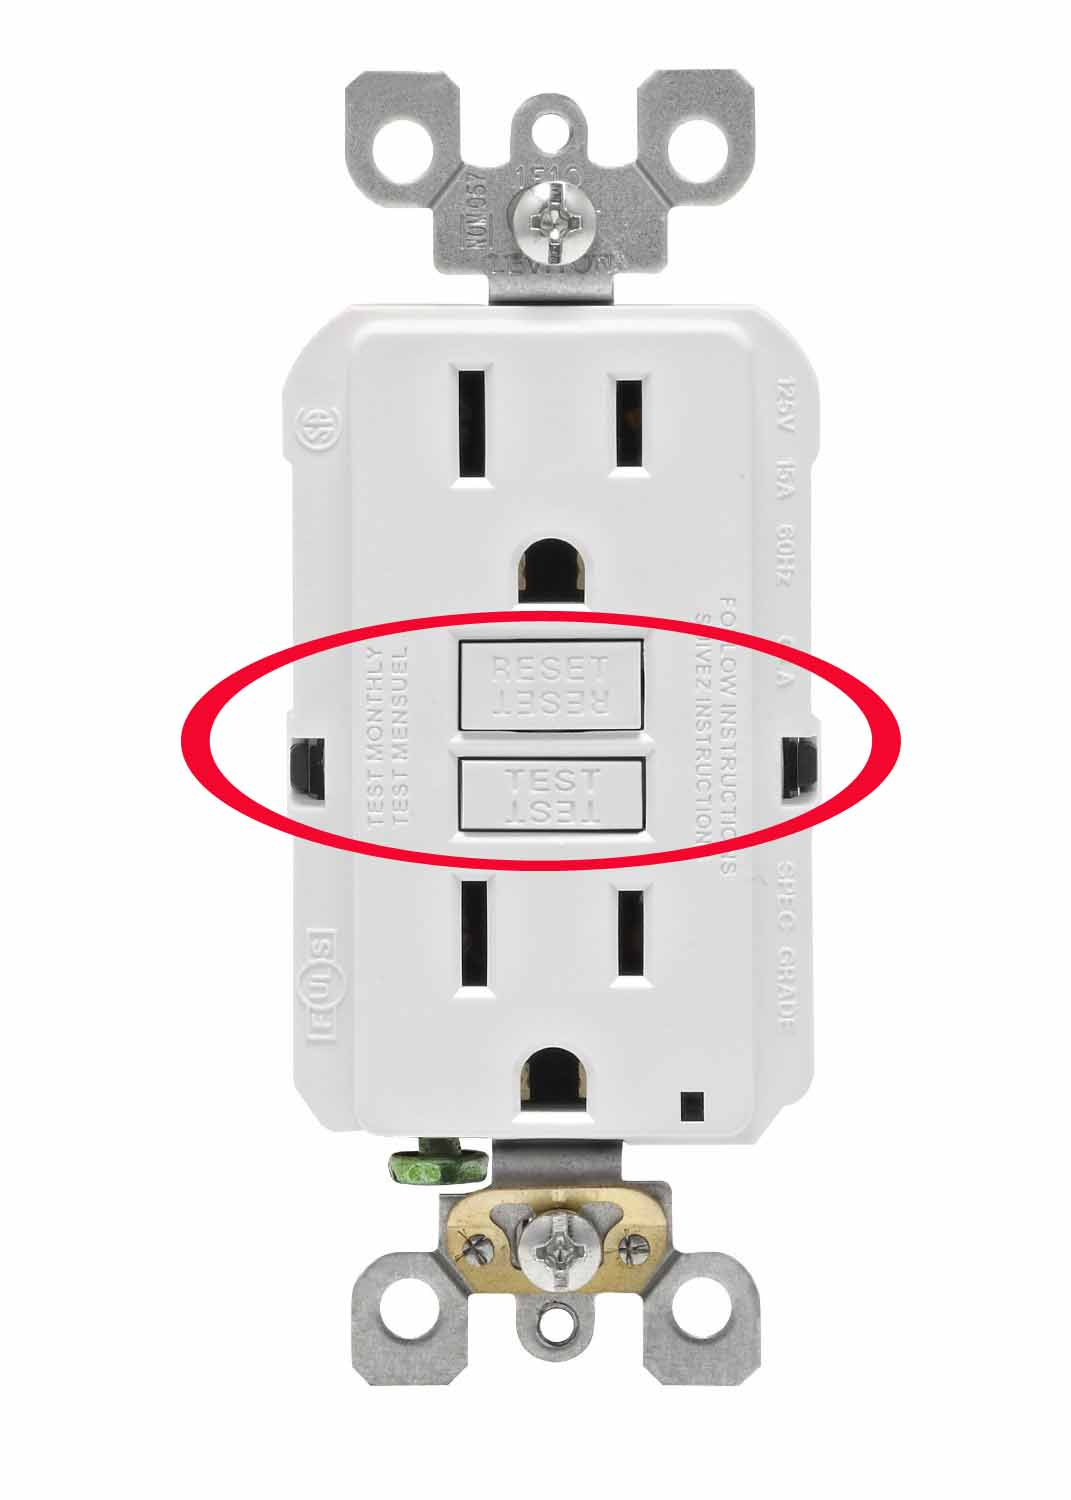 ground fault circuit interrupter wiring diagram security system 10 home safety tips from a paramedic firefighter